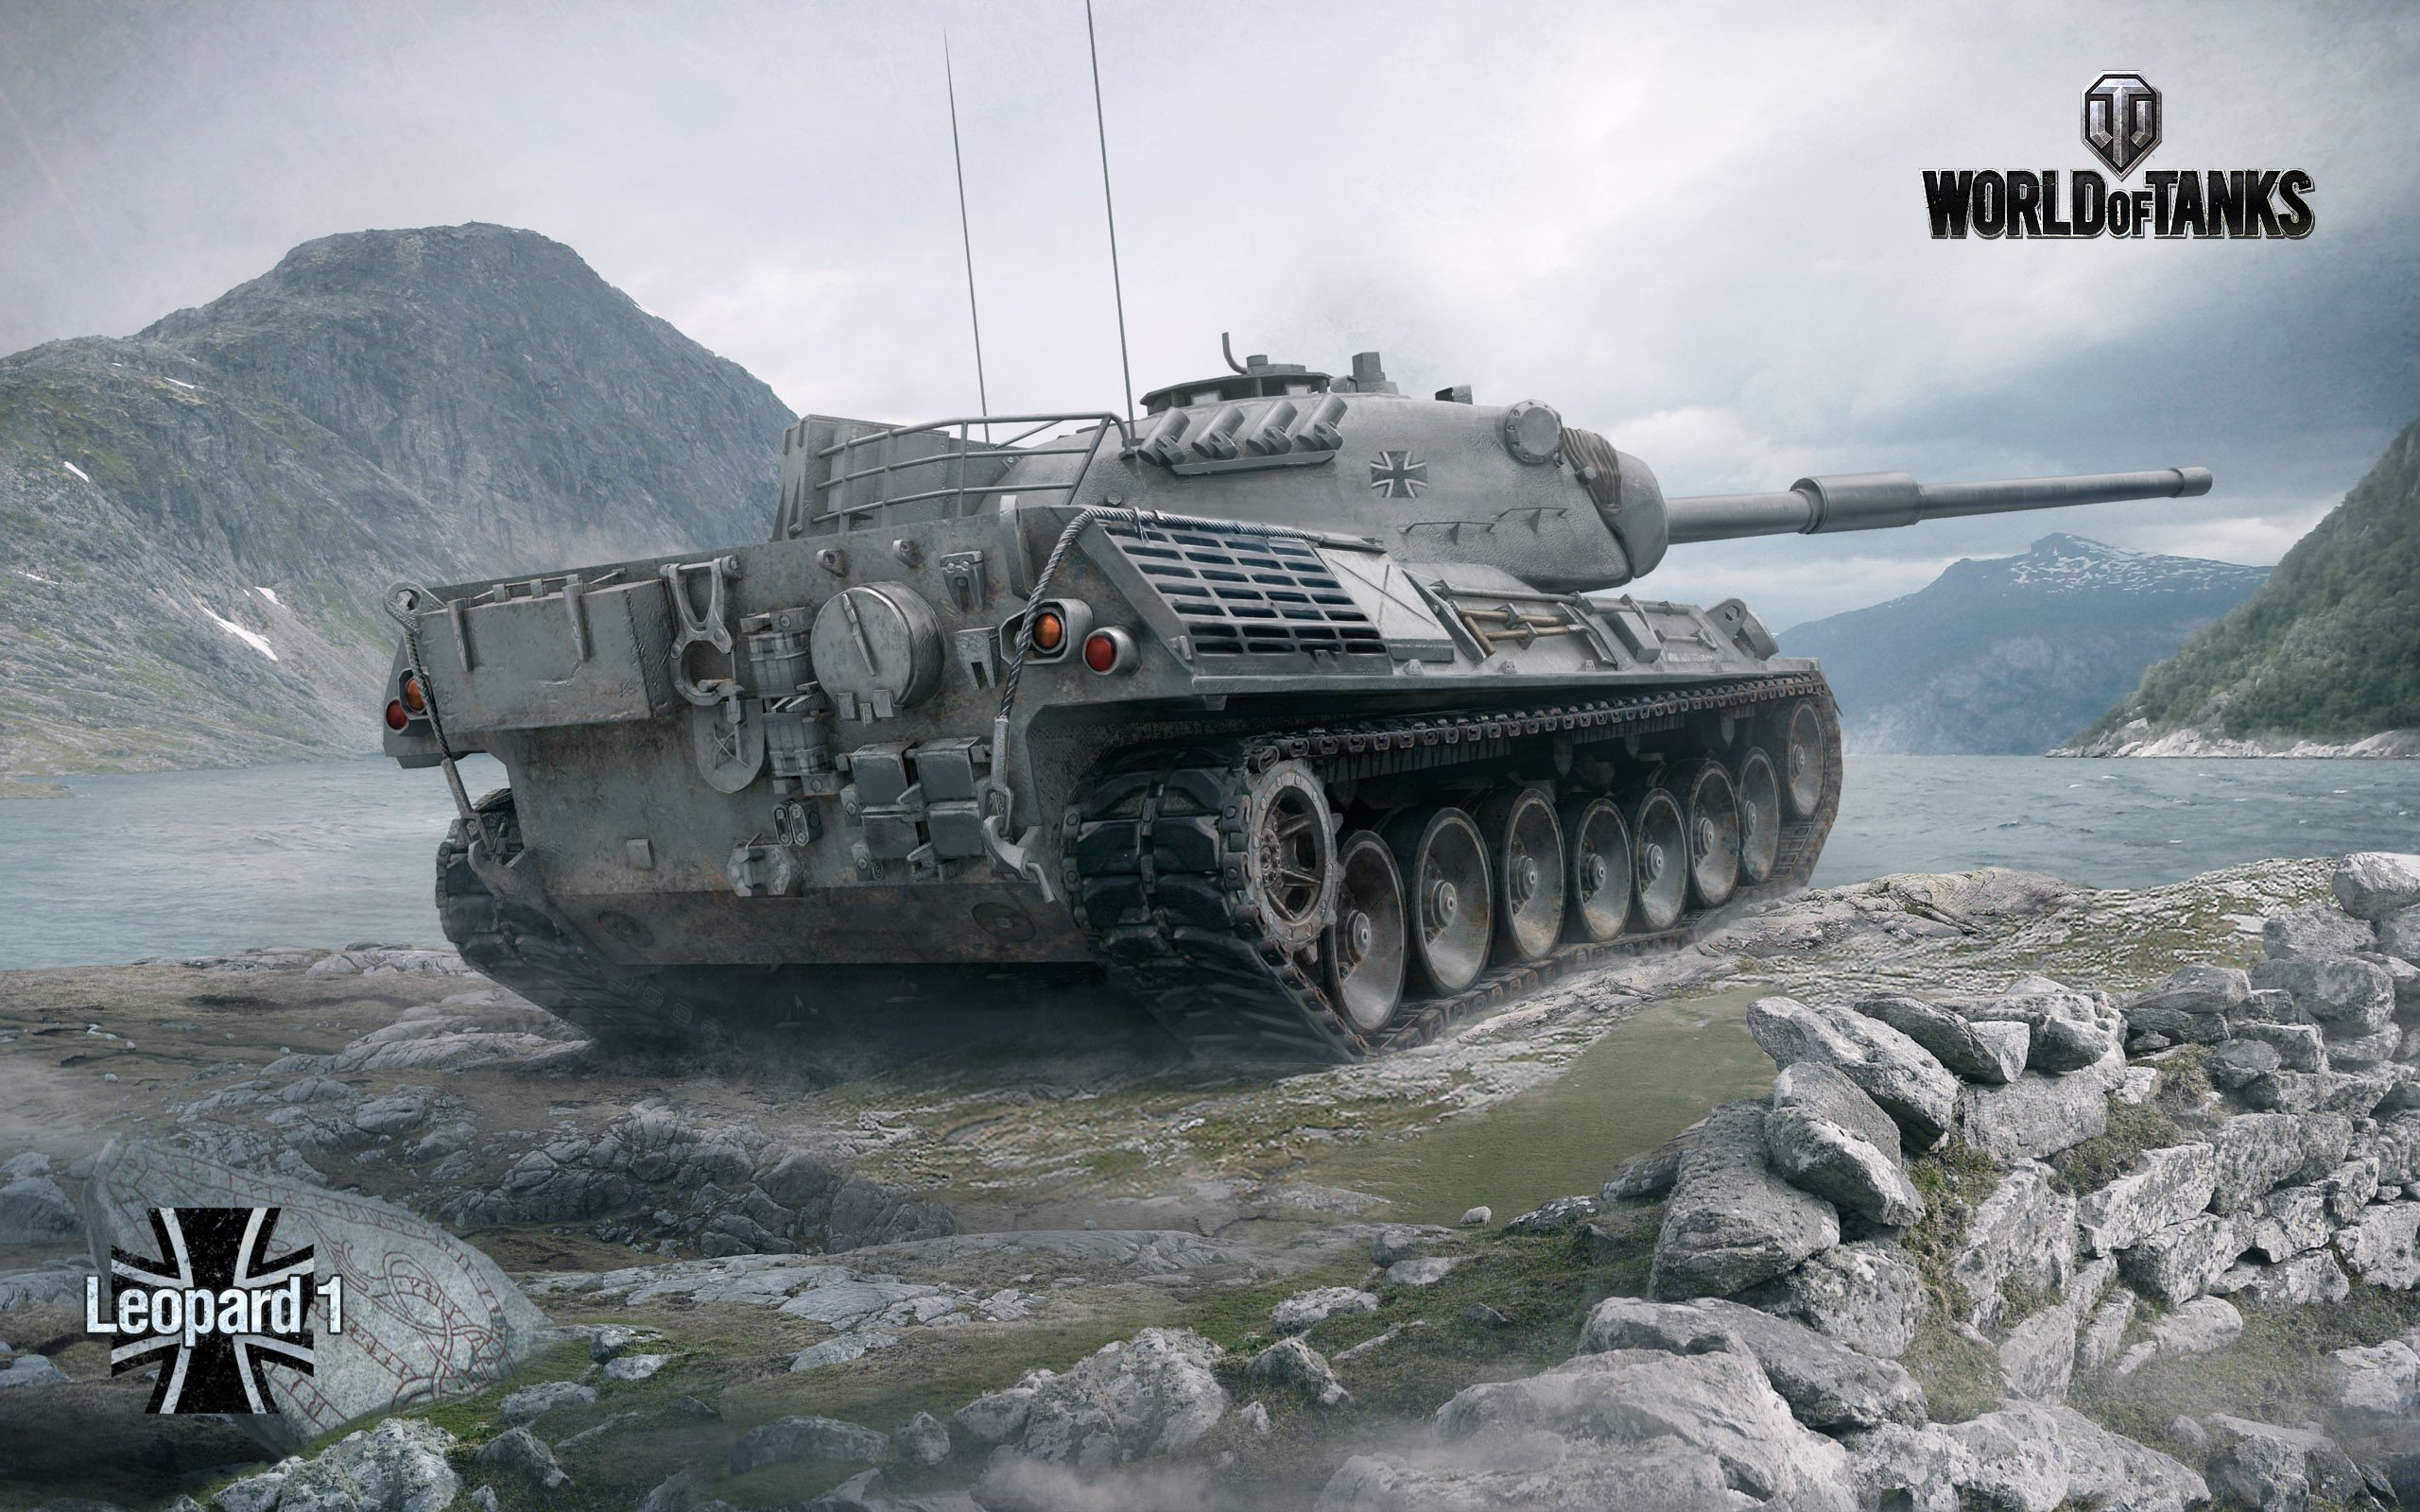 tank, World of Tanks, Leopard 1, Wargaming Wallpaper